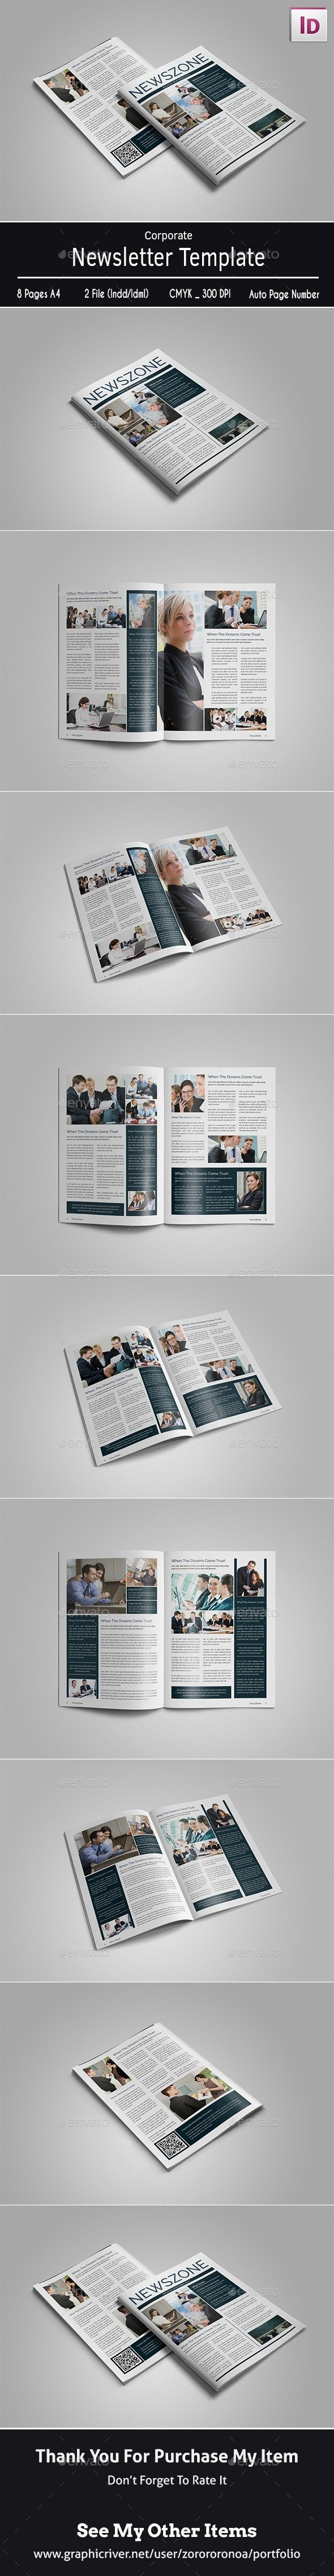 Corporate Newsletter Template - Newsletters Print Templates